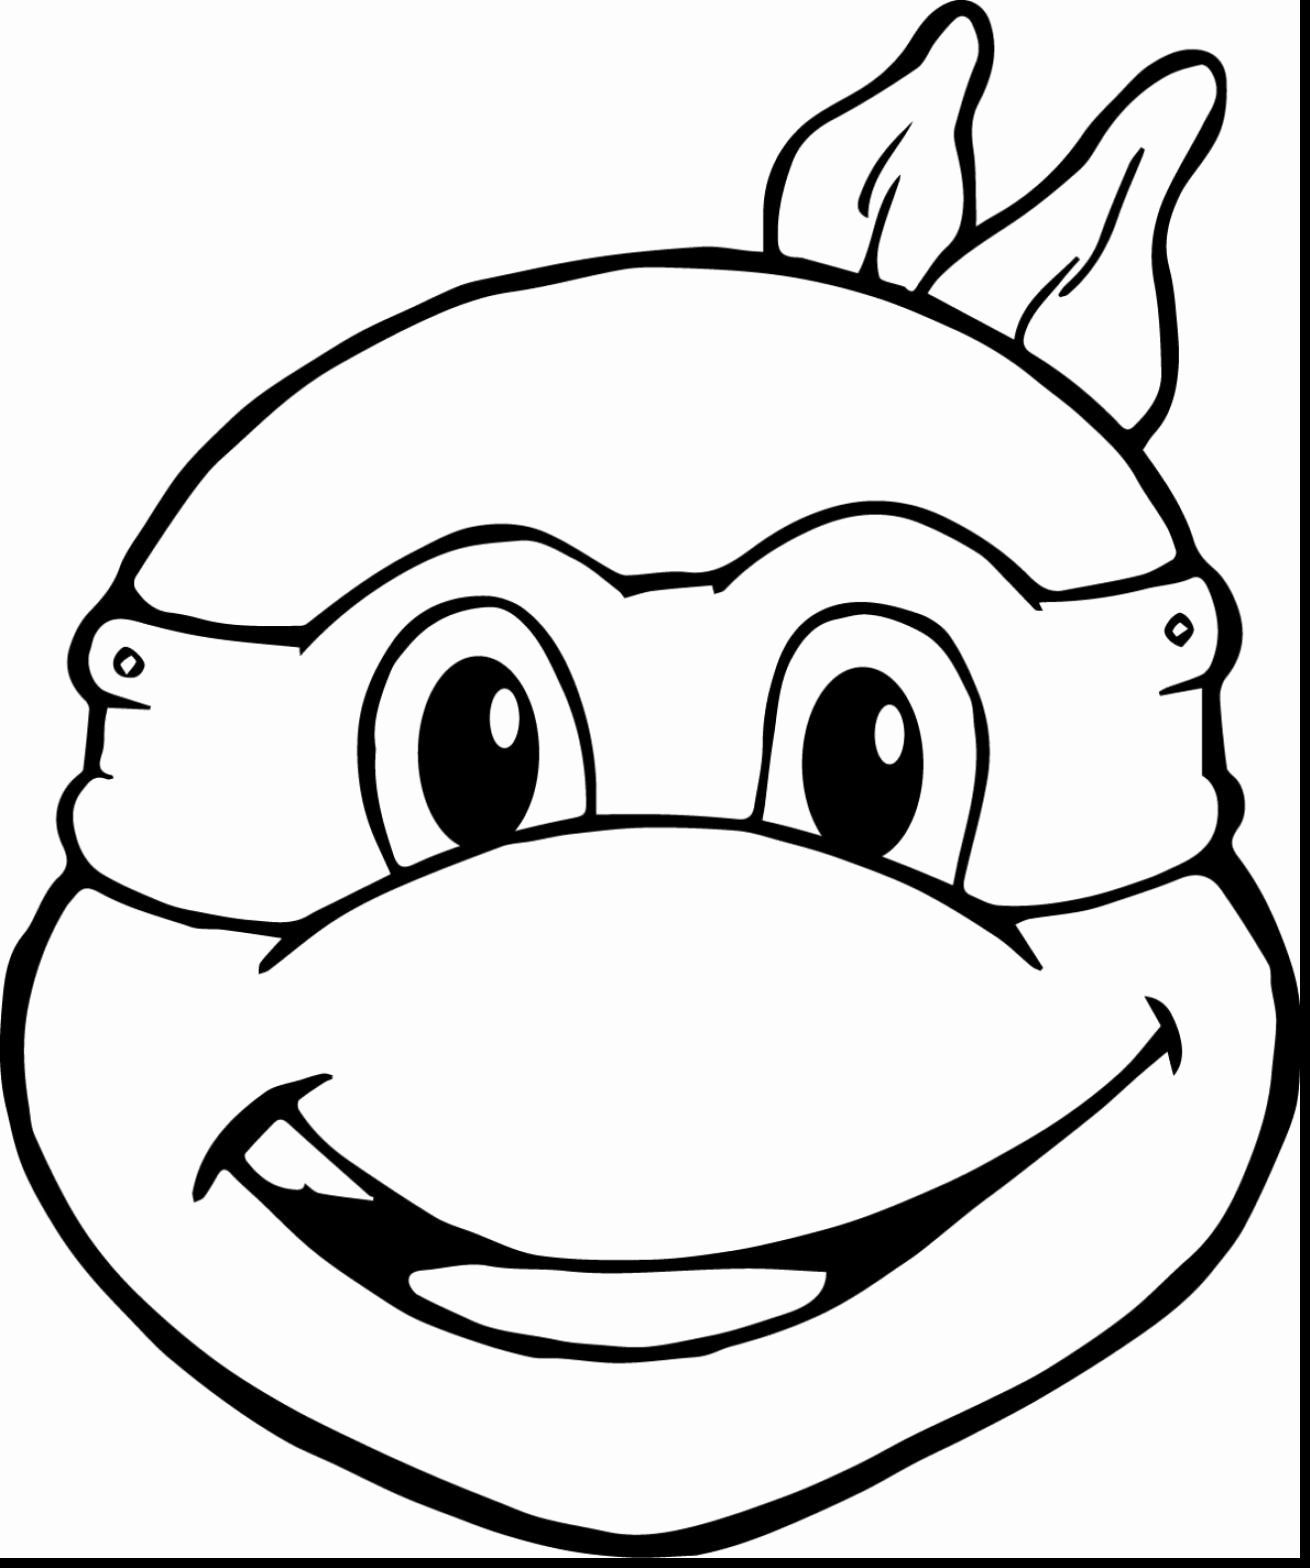 Ninja Turtle Coloring Book Lovely Ninja Turtles Coloring Pages